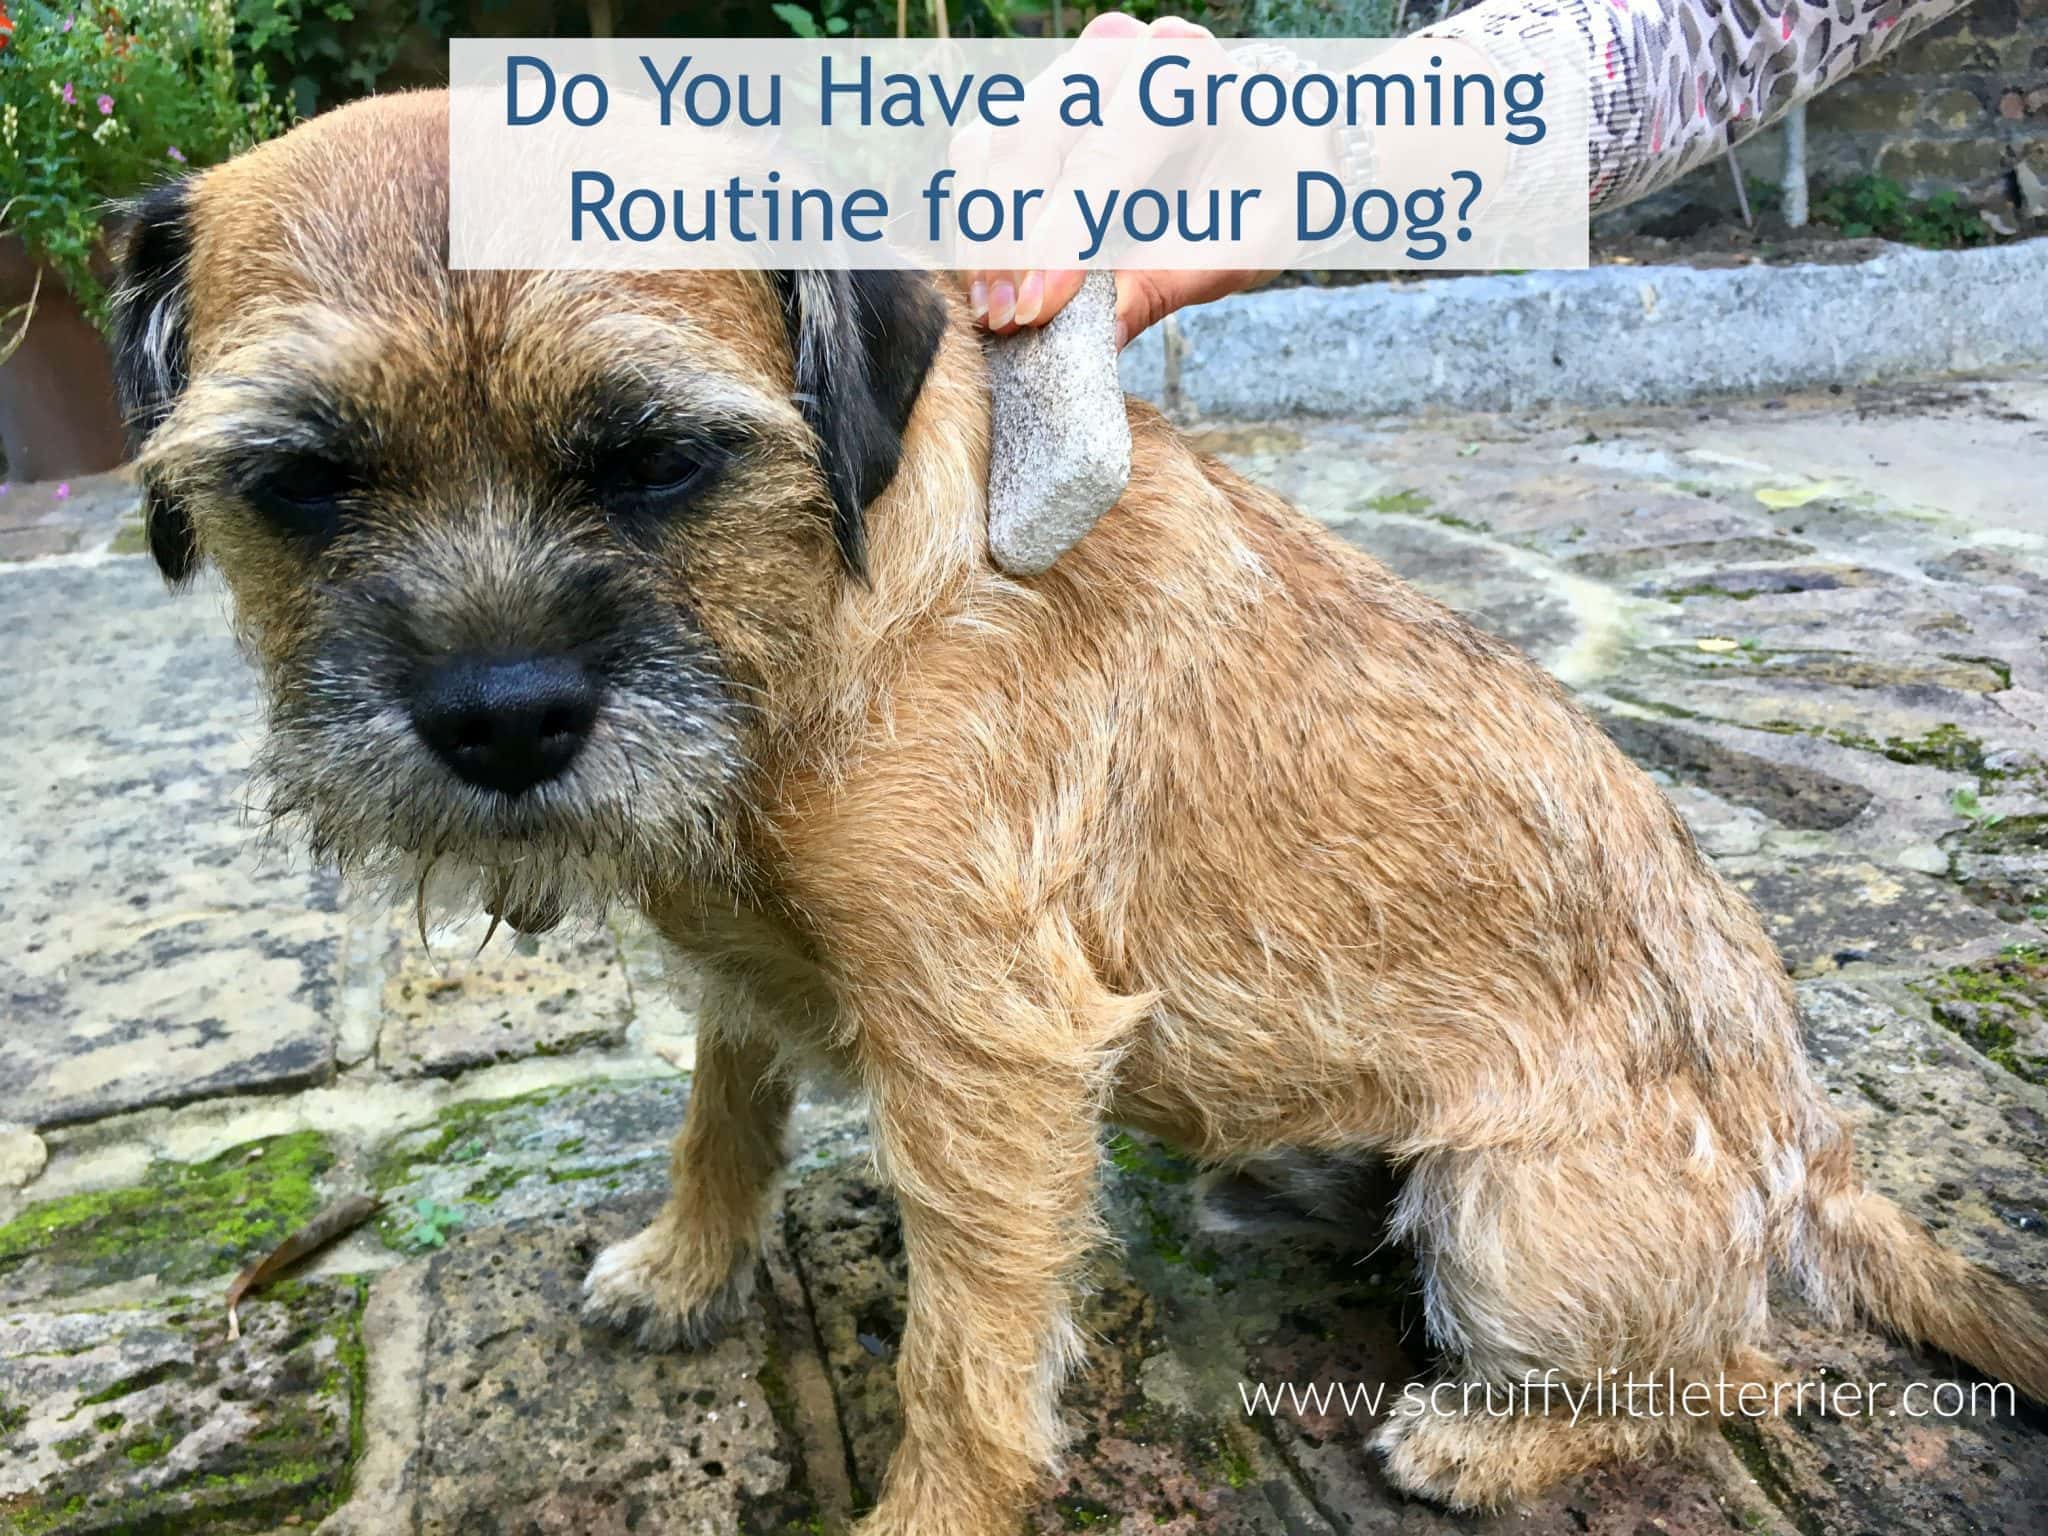 Dog Grooming {Dog Grooming Routine} #DogHealth #Grooming #Dogs www.scruffylittleterrier.com